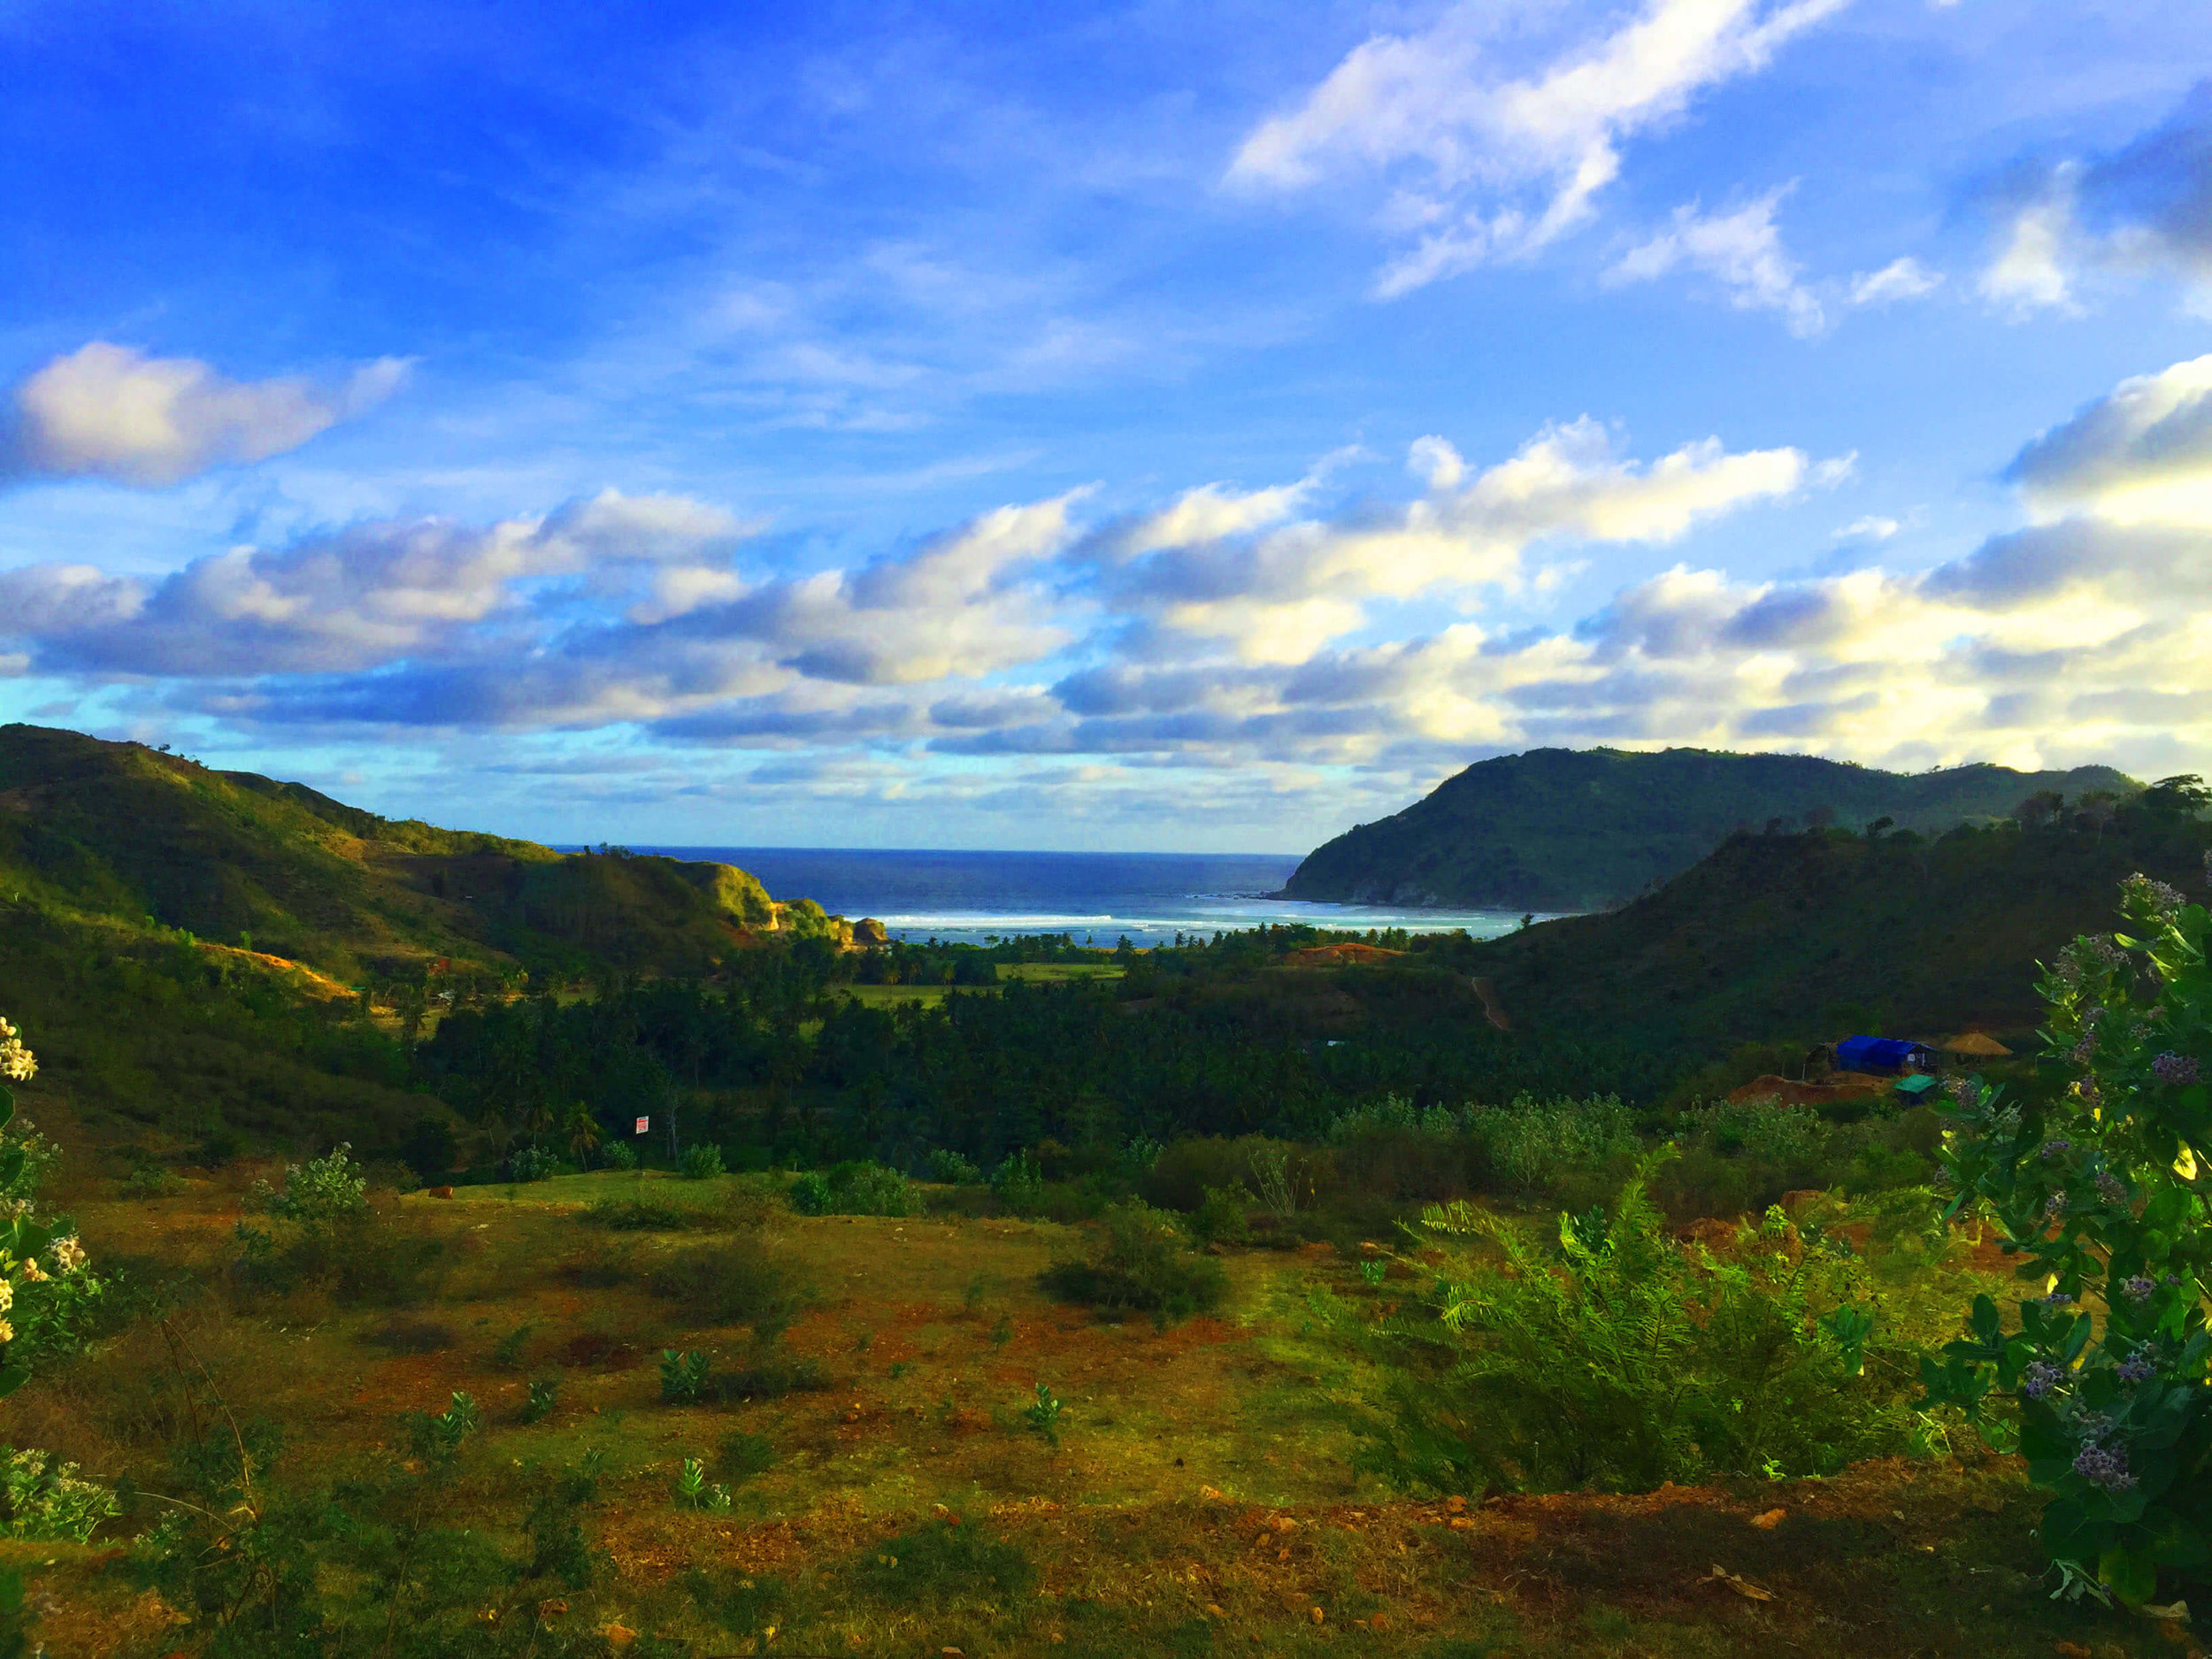 Valley shot- What a beautiful day in Lombok